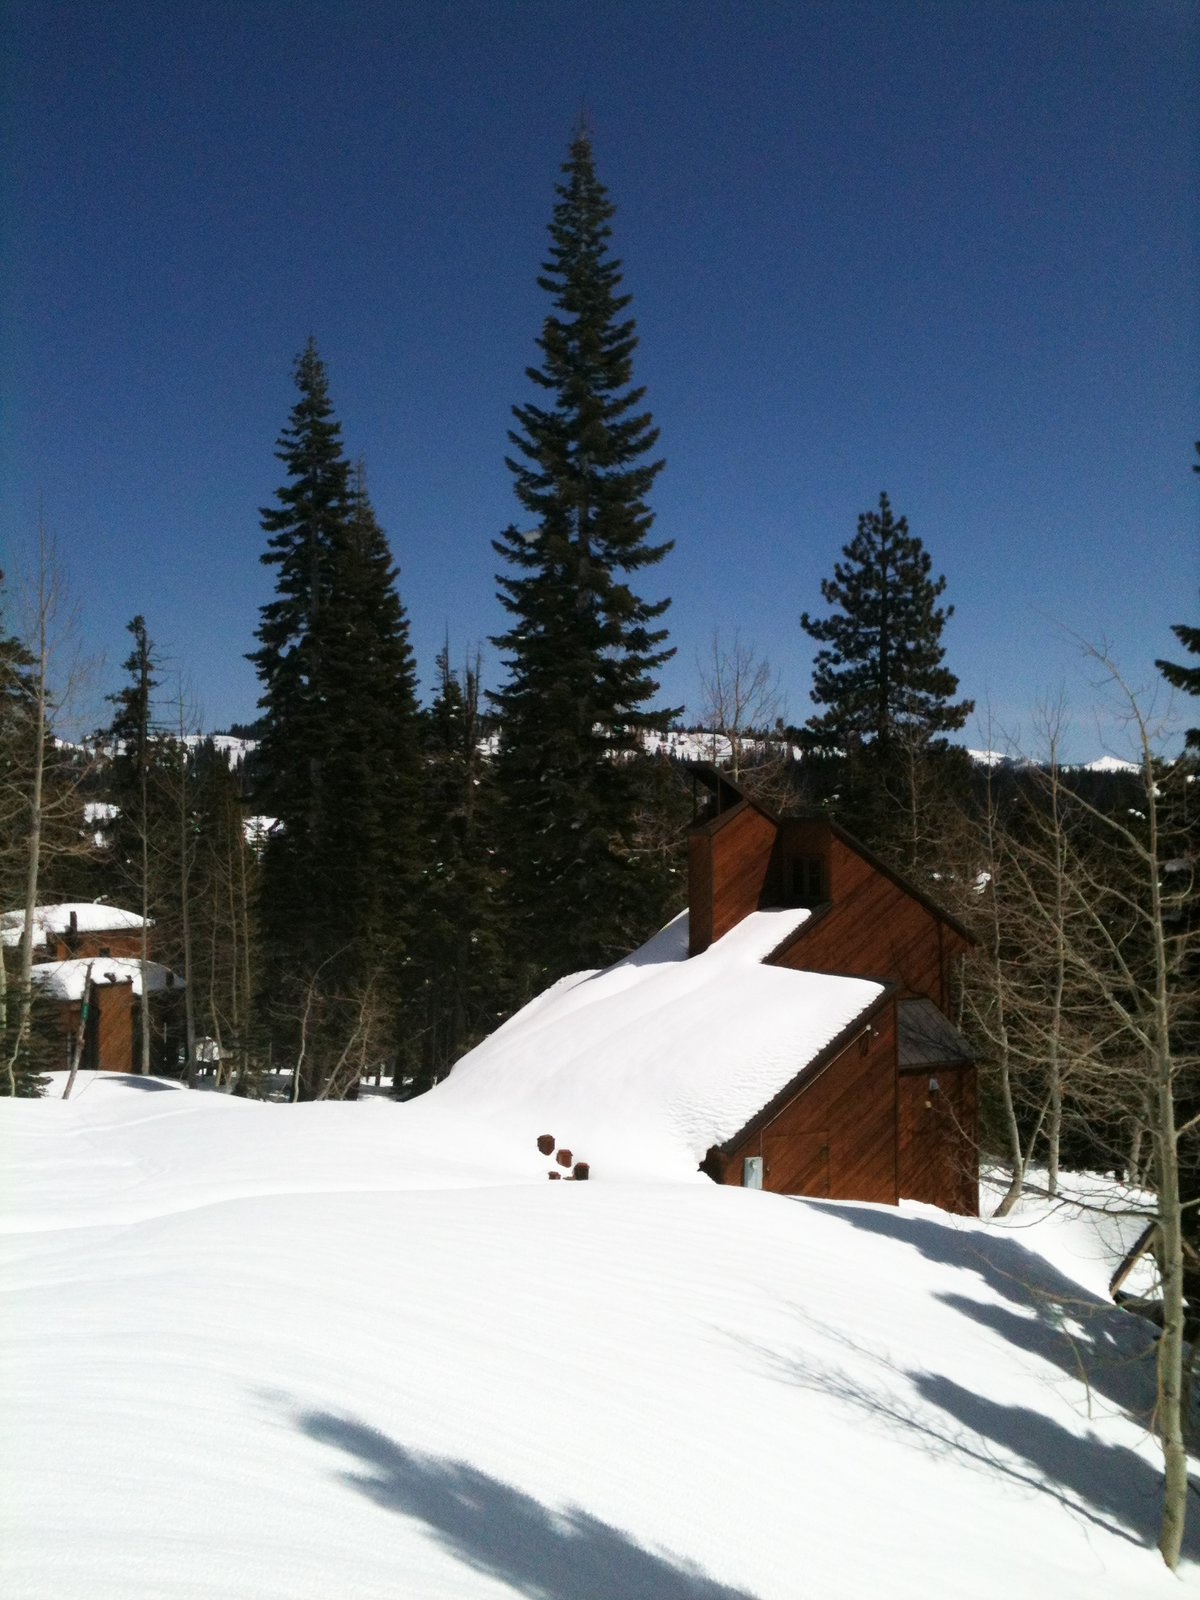 The diagonal redwood slats and geometric structure are wonderfully accentuated by the snow bank covering the backside of the cabin.  Photo 4 of 4 in Snow in Bear Valley